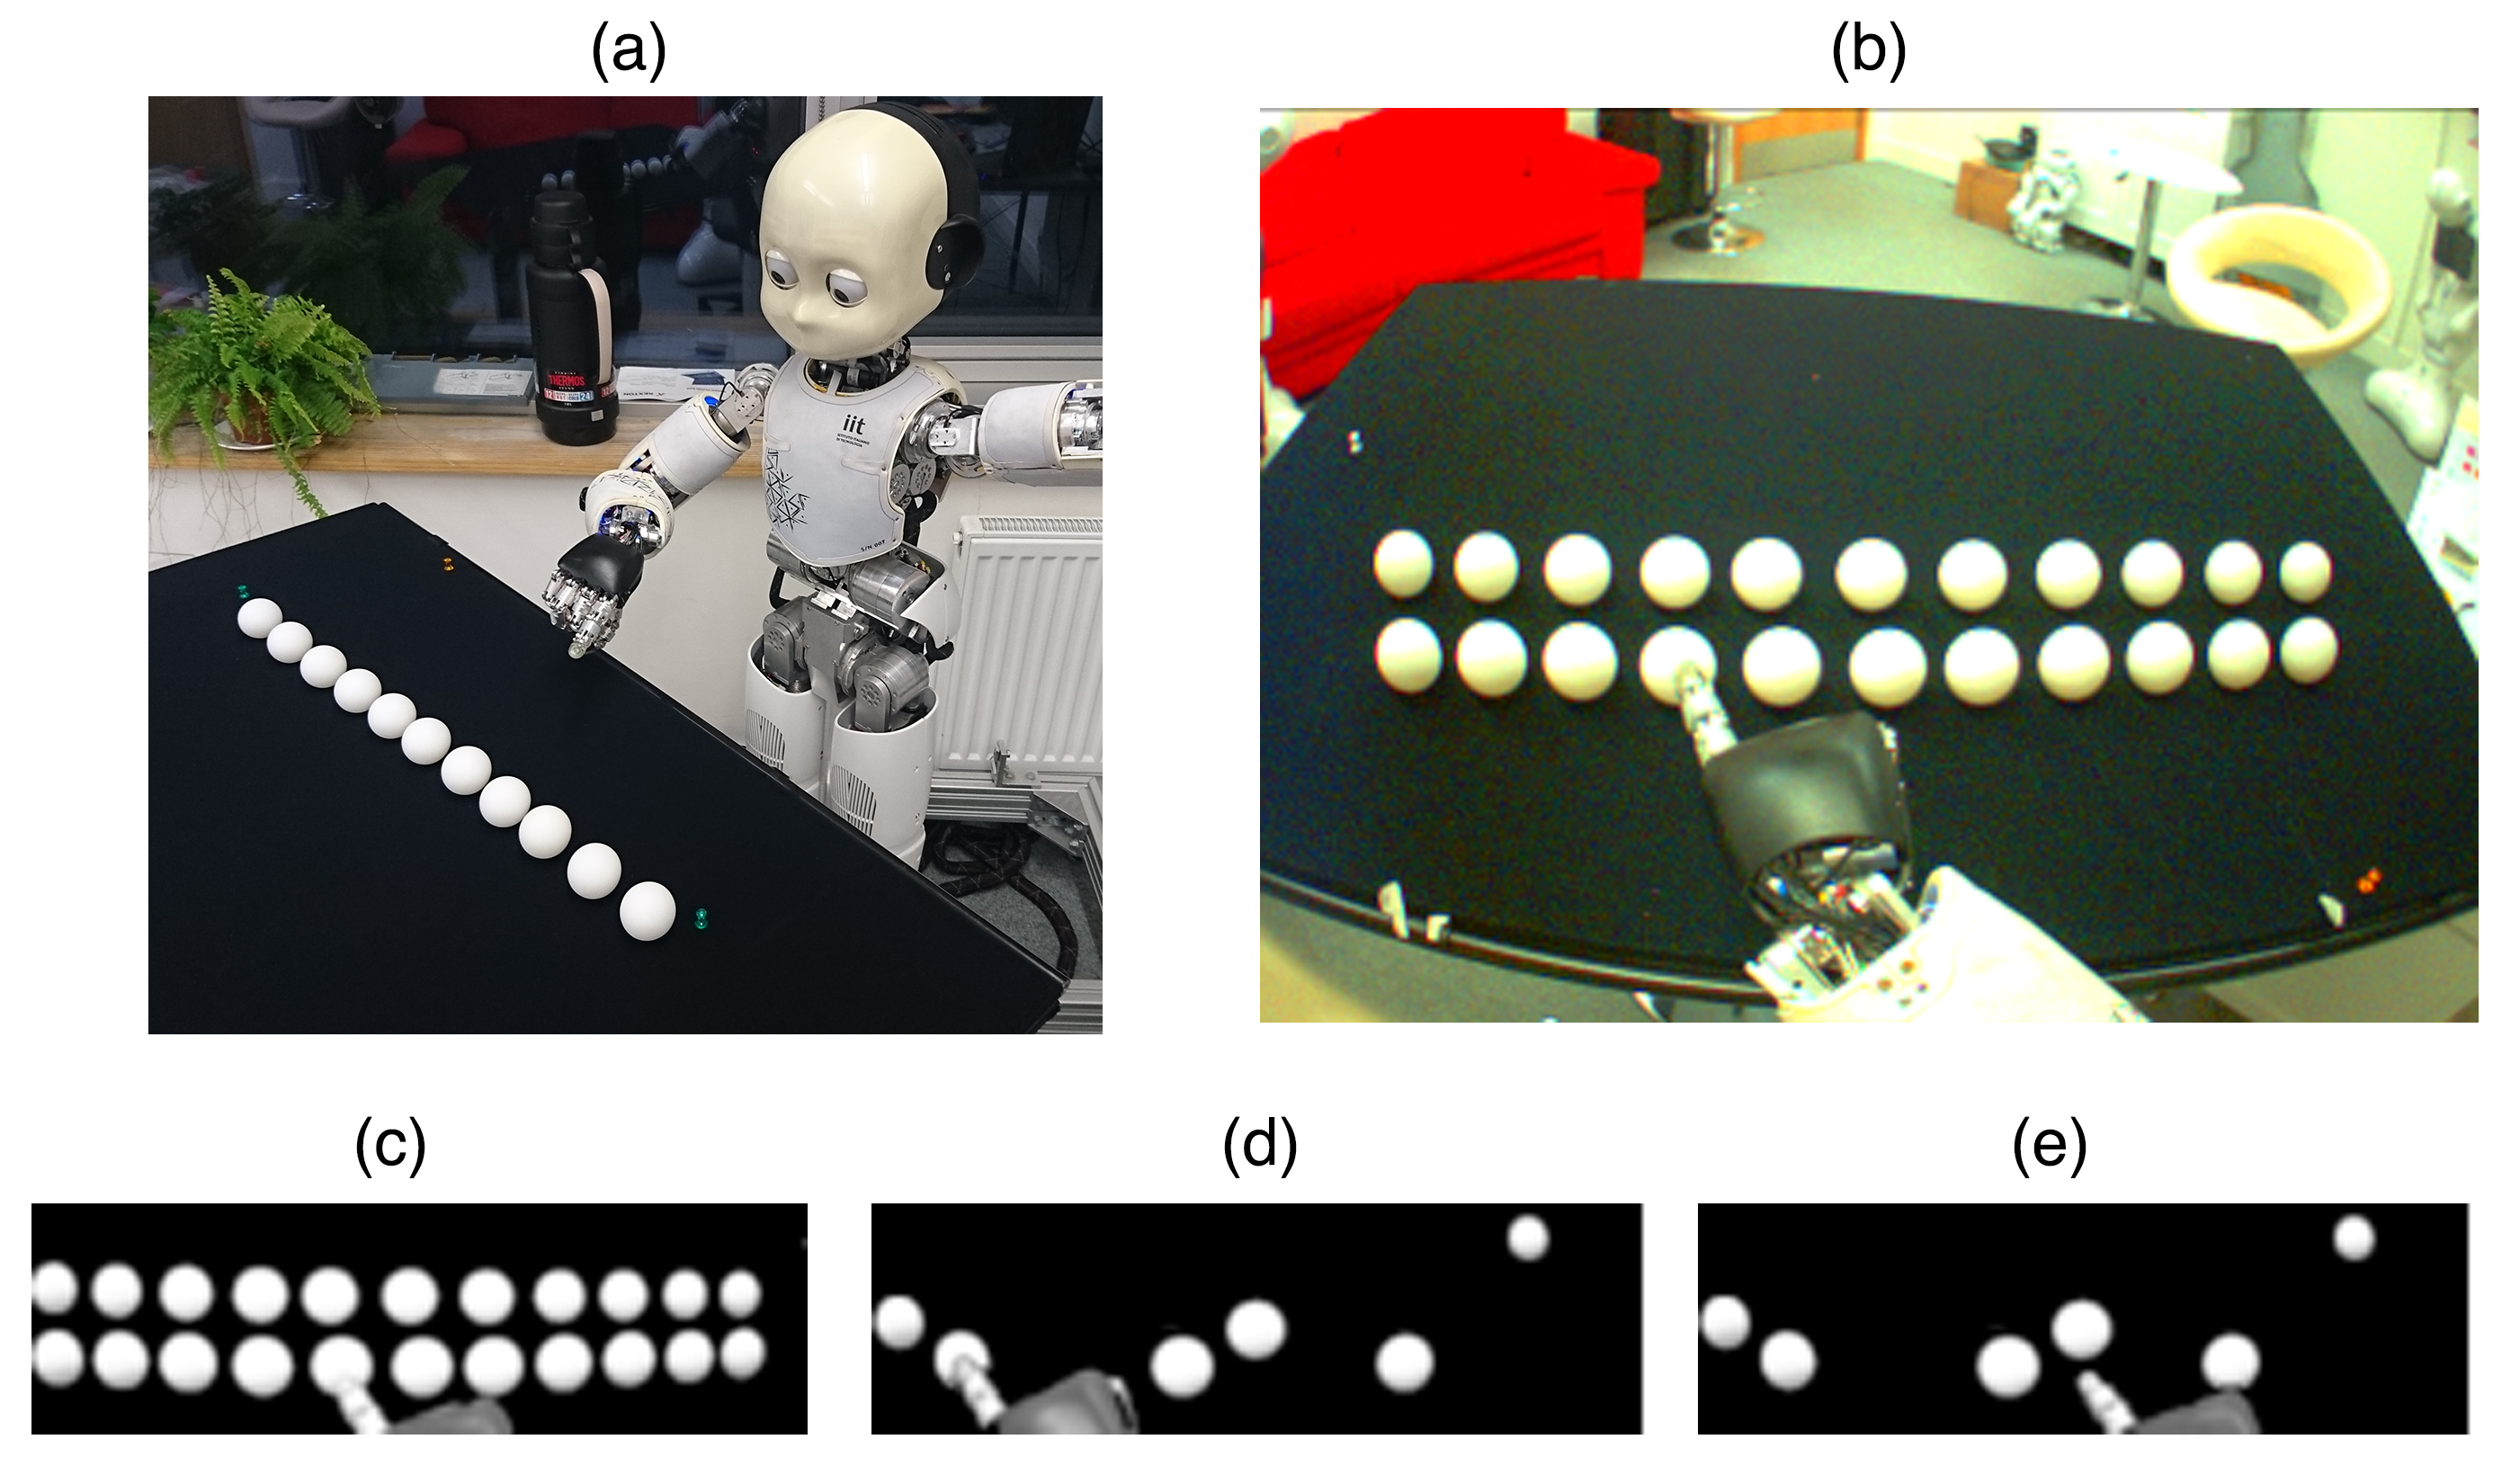 Experimental set up and input images. (a) iCub humanoid robot pointing to the table tennis balls - robot configuration. (b) iCub camera view of robot hand pointing to the objects. (c) Processed image: cut image (row 1 and 3) with a pointing hand. (d) Generated image - pointing to the second position. (e) Generated image - pointing to the sixth position.